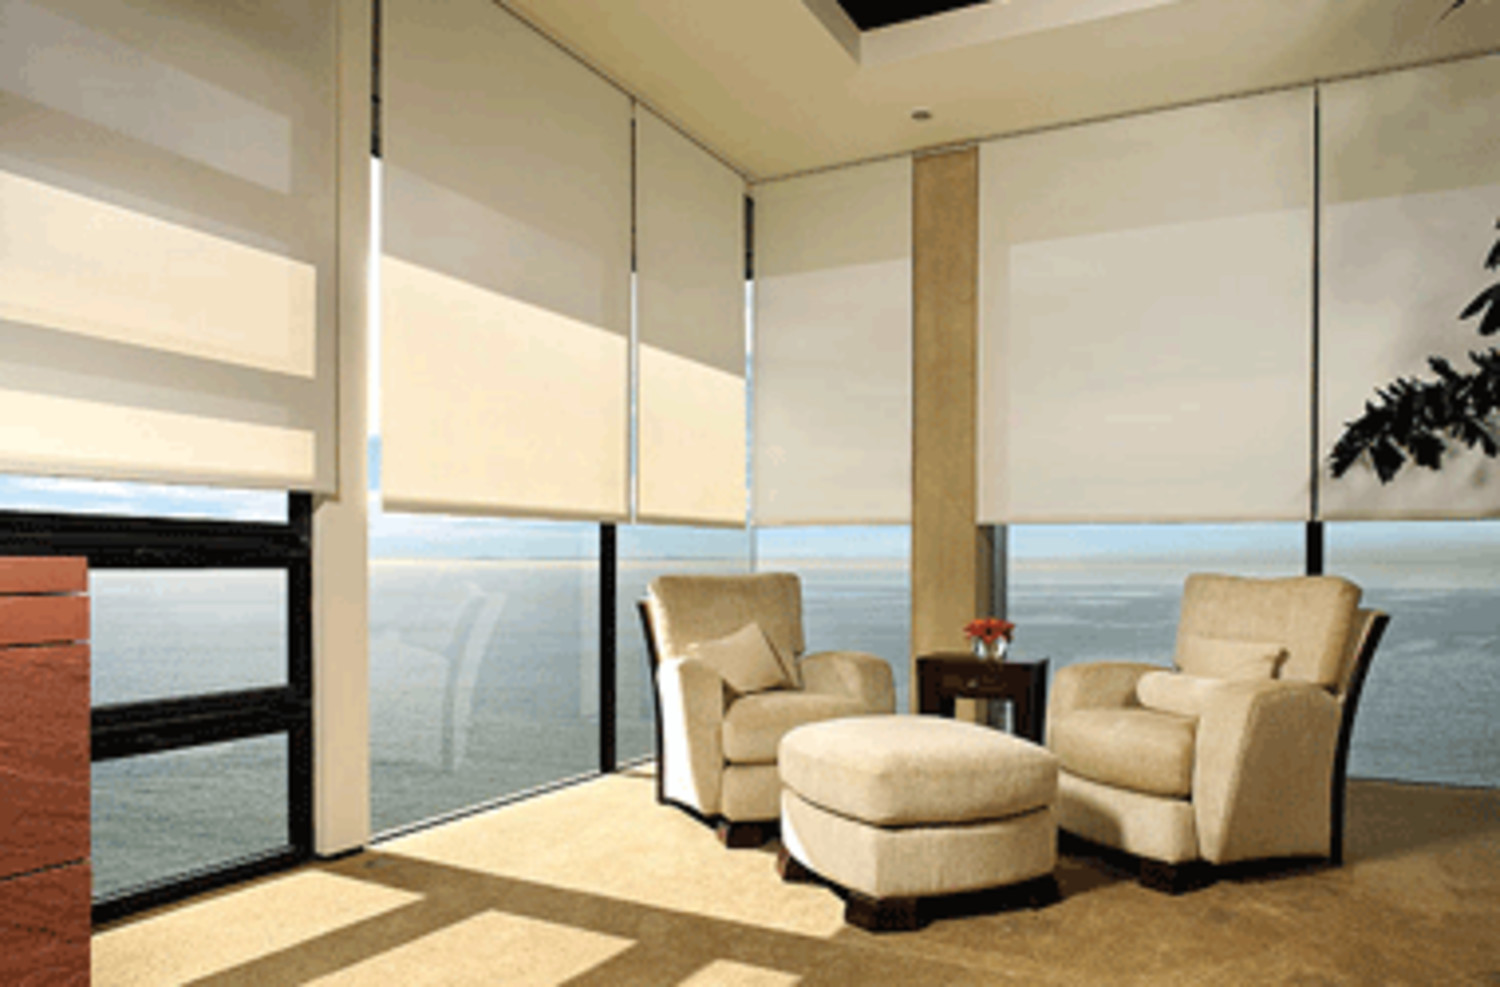 Motorized blind and shade systems digital21 smart home - Motorized exterior window shades ...